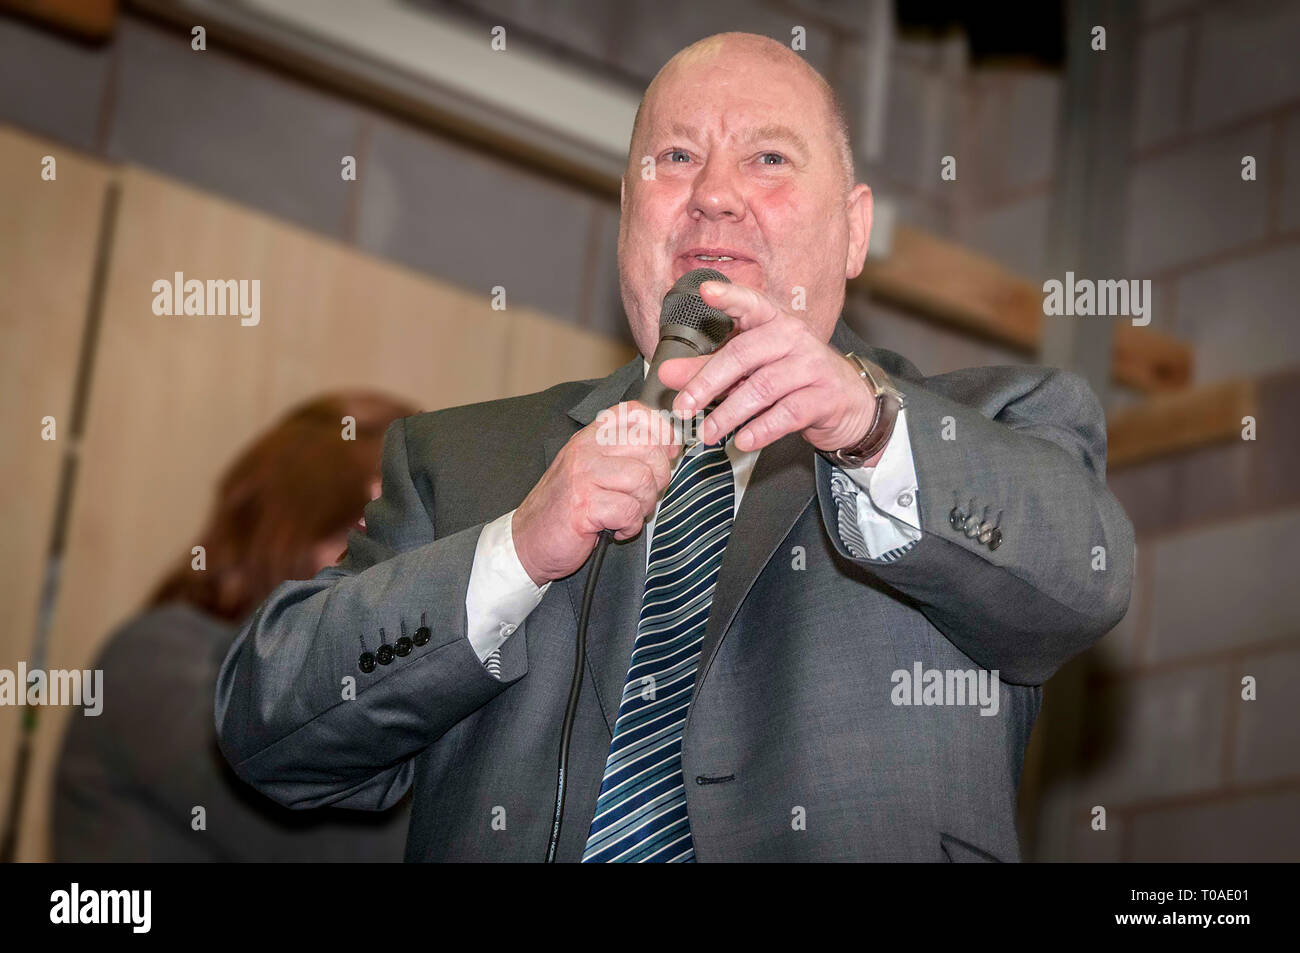 Liverpool mayor Joe Anderson. - Stock Image